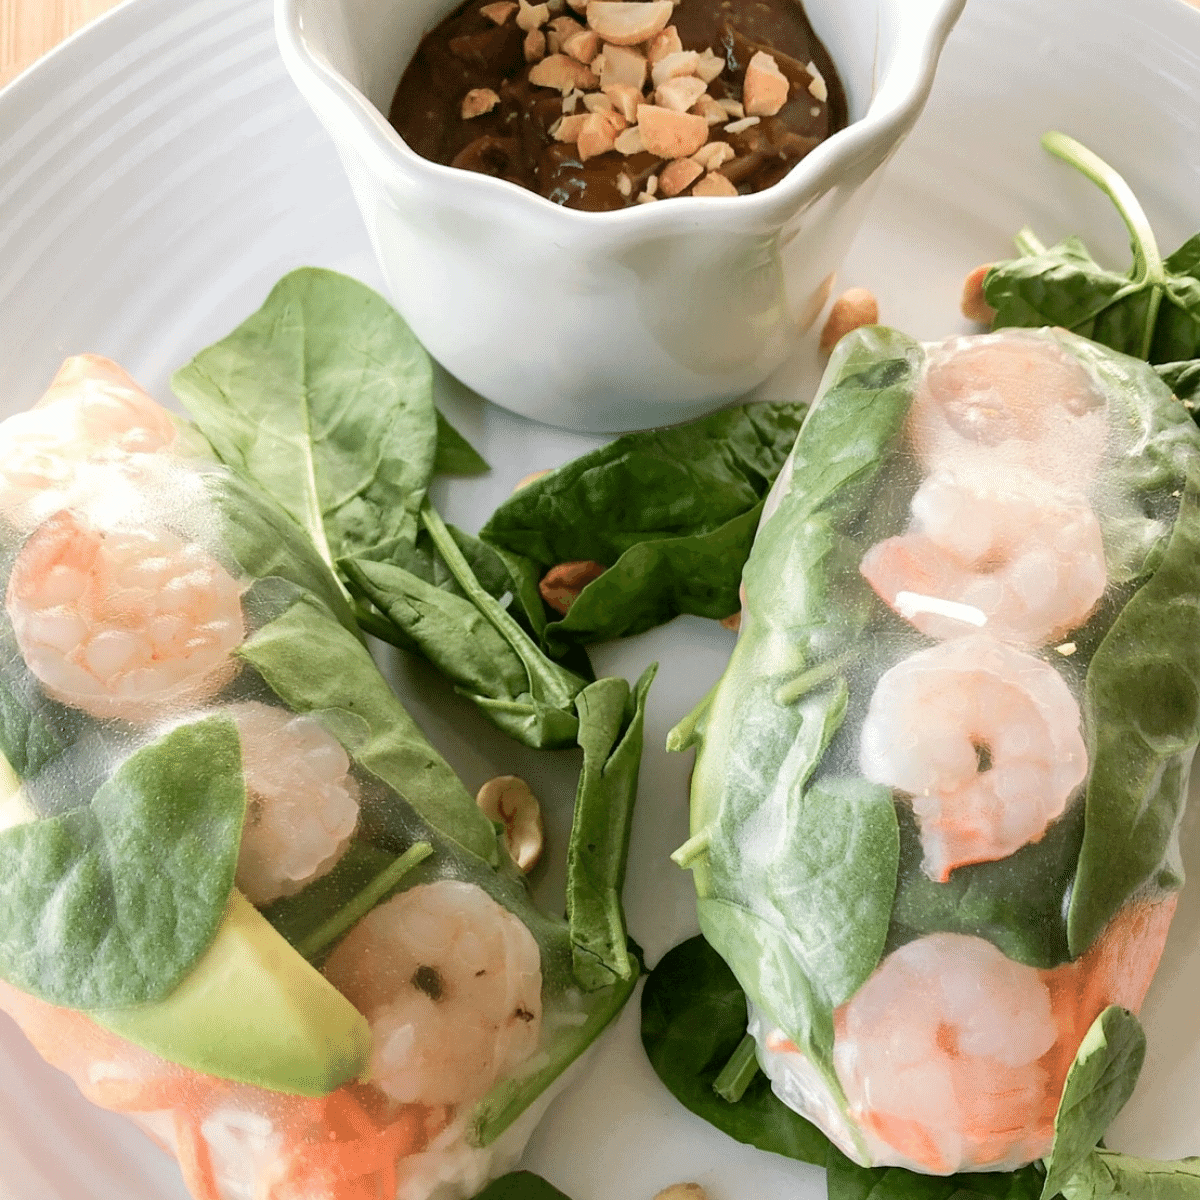 Salad rolls served with peanut dipping sauce